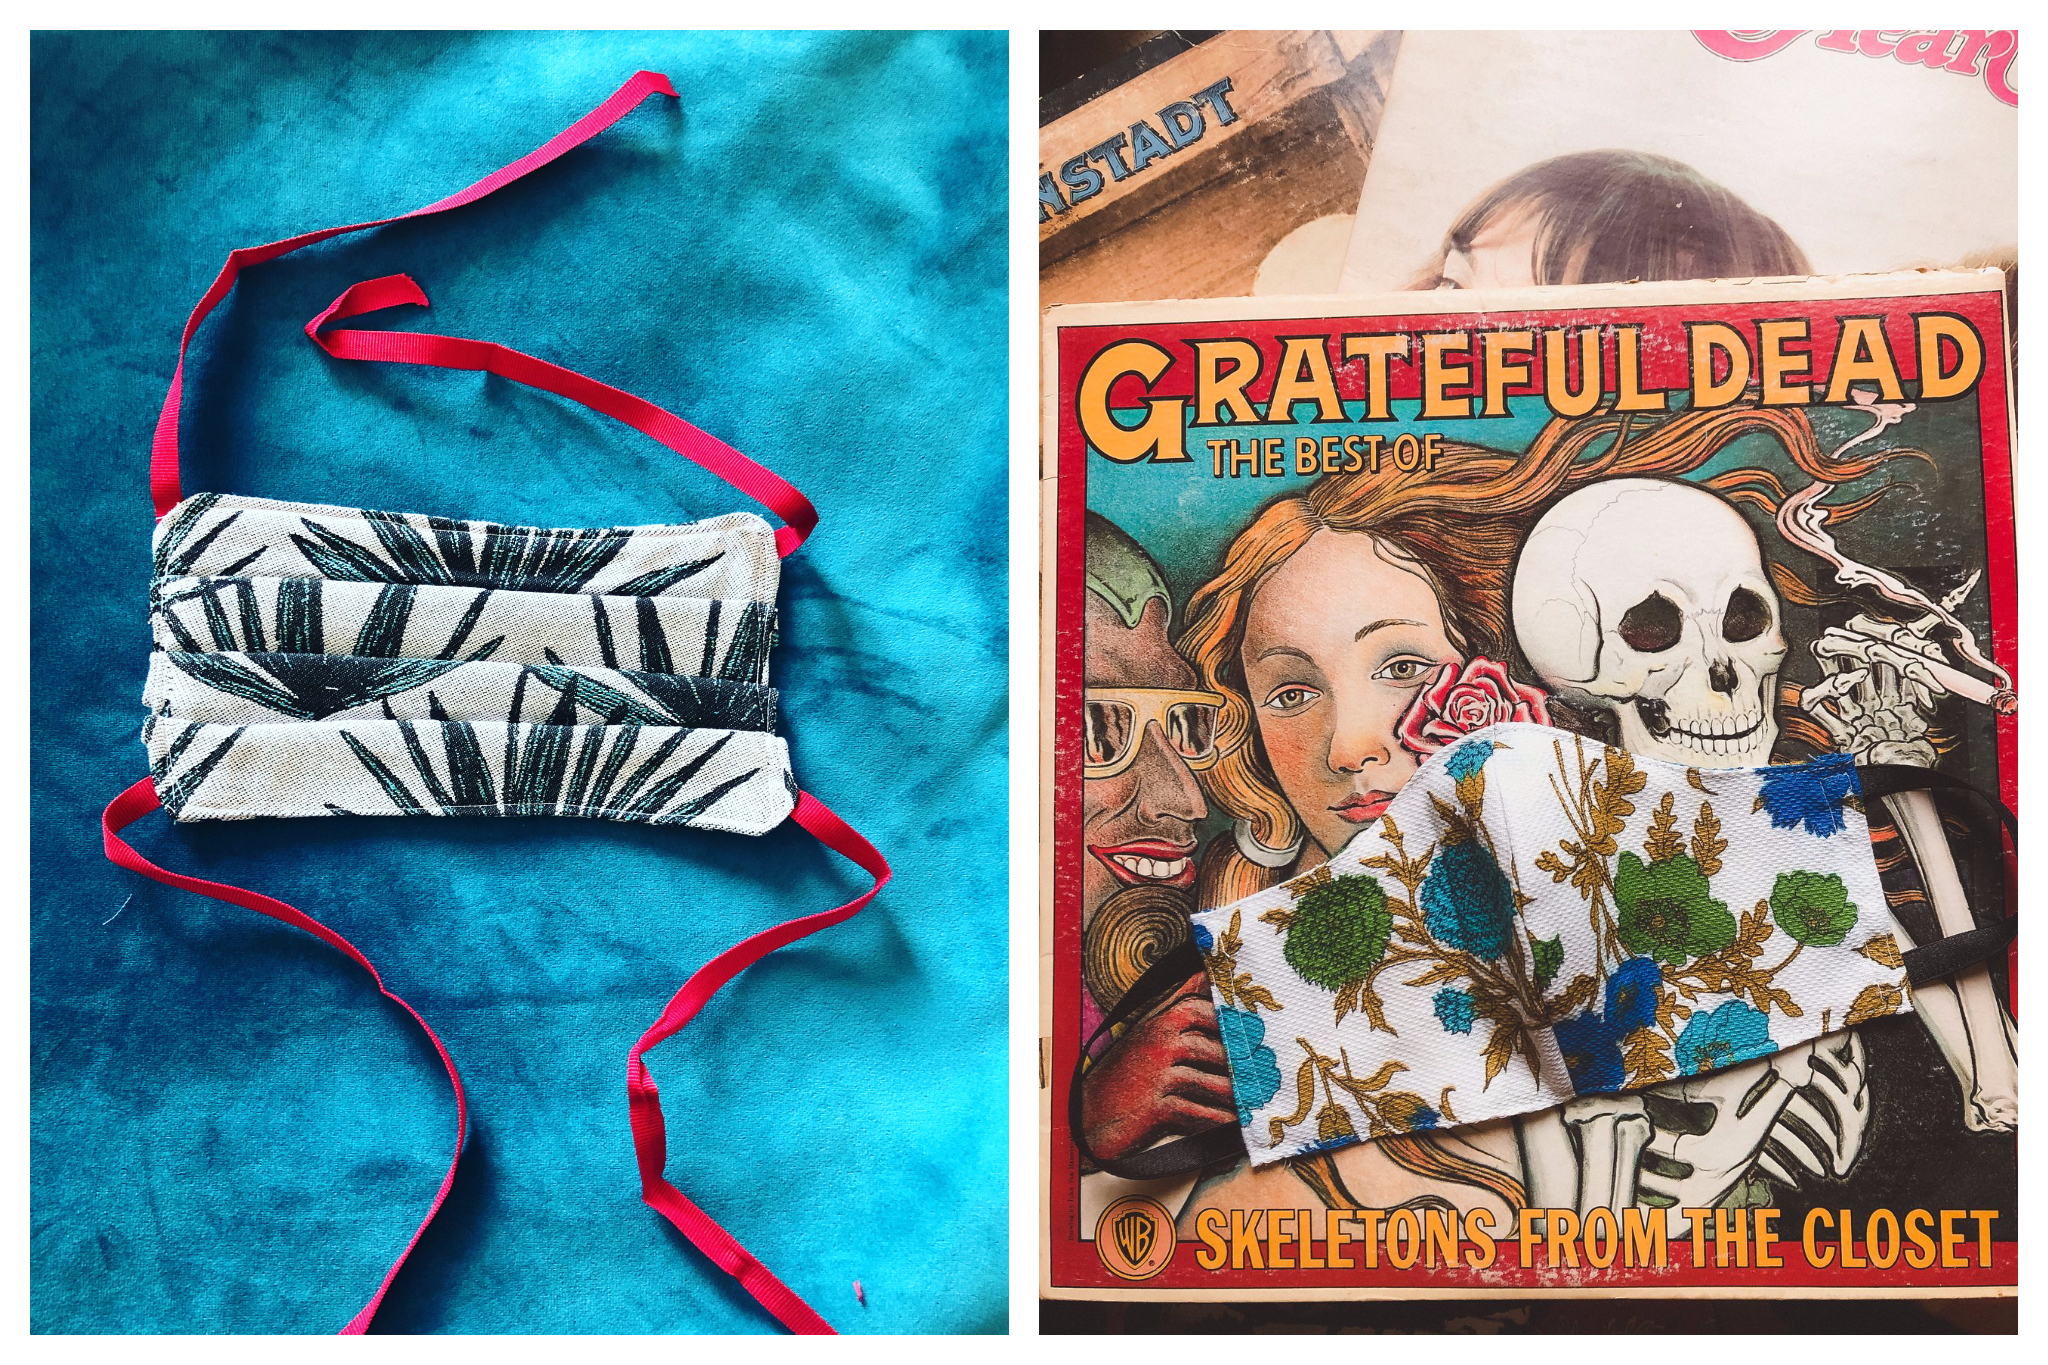 Left: a white and green face mask with a plant motif and with red straps on a blue velvet background. Right: a white blue and green face mask sitting on an old record, Skeletons from the Closet: The Best of Grateful Dead.